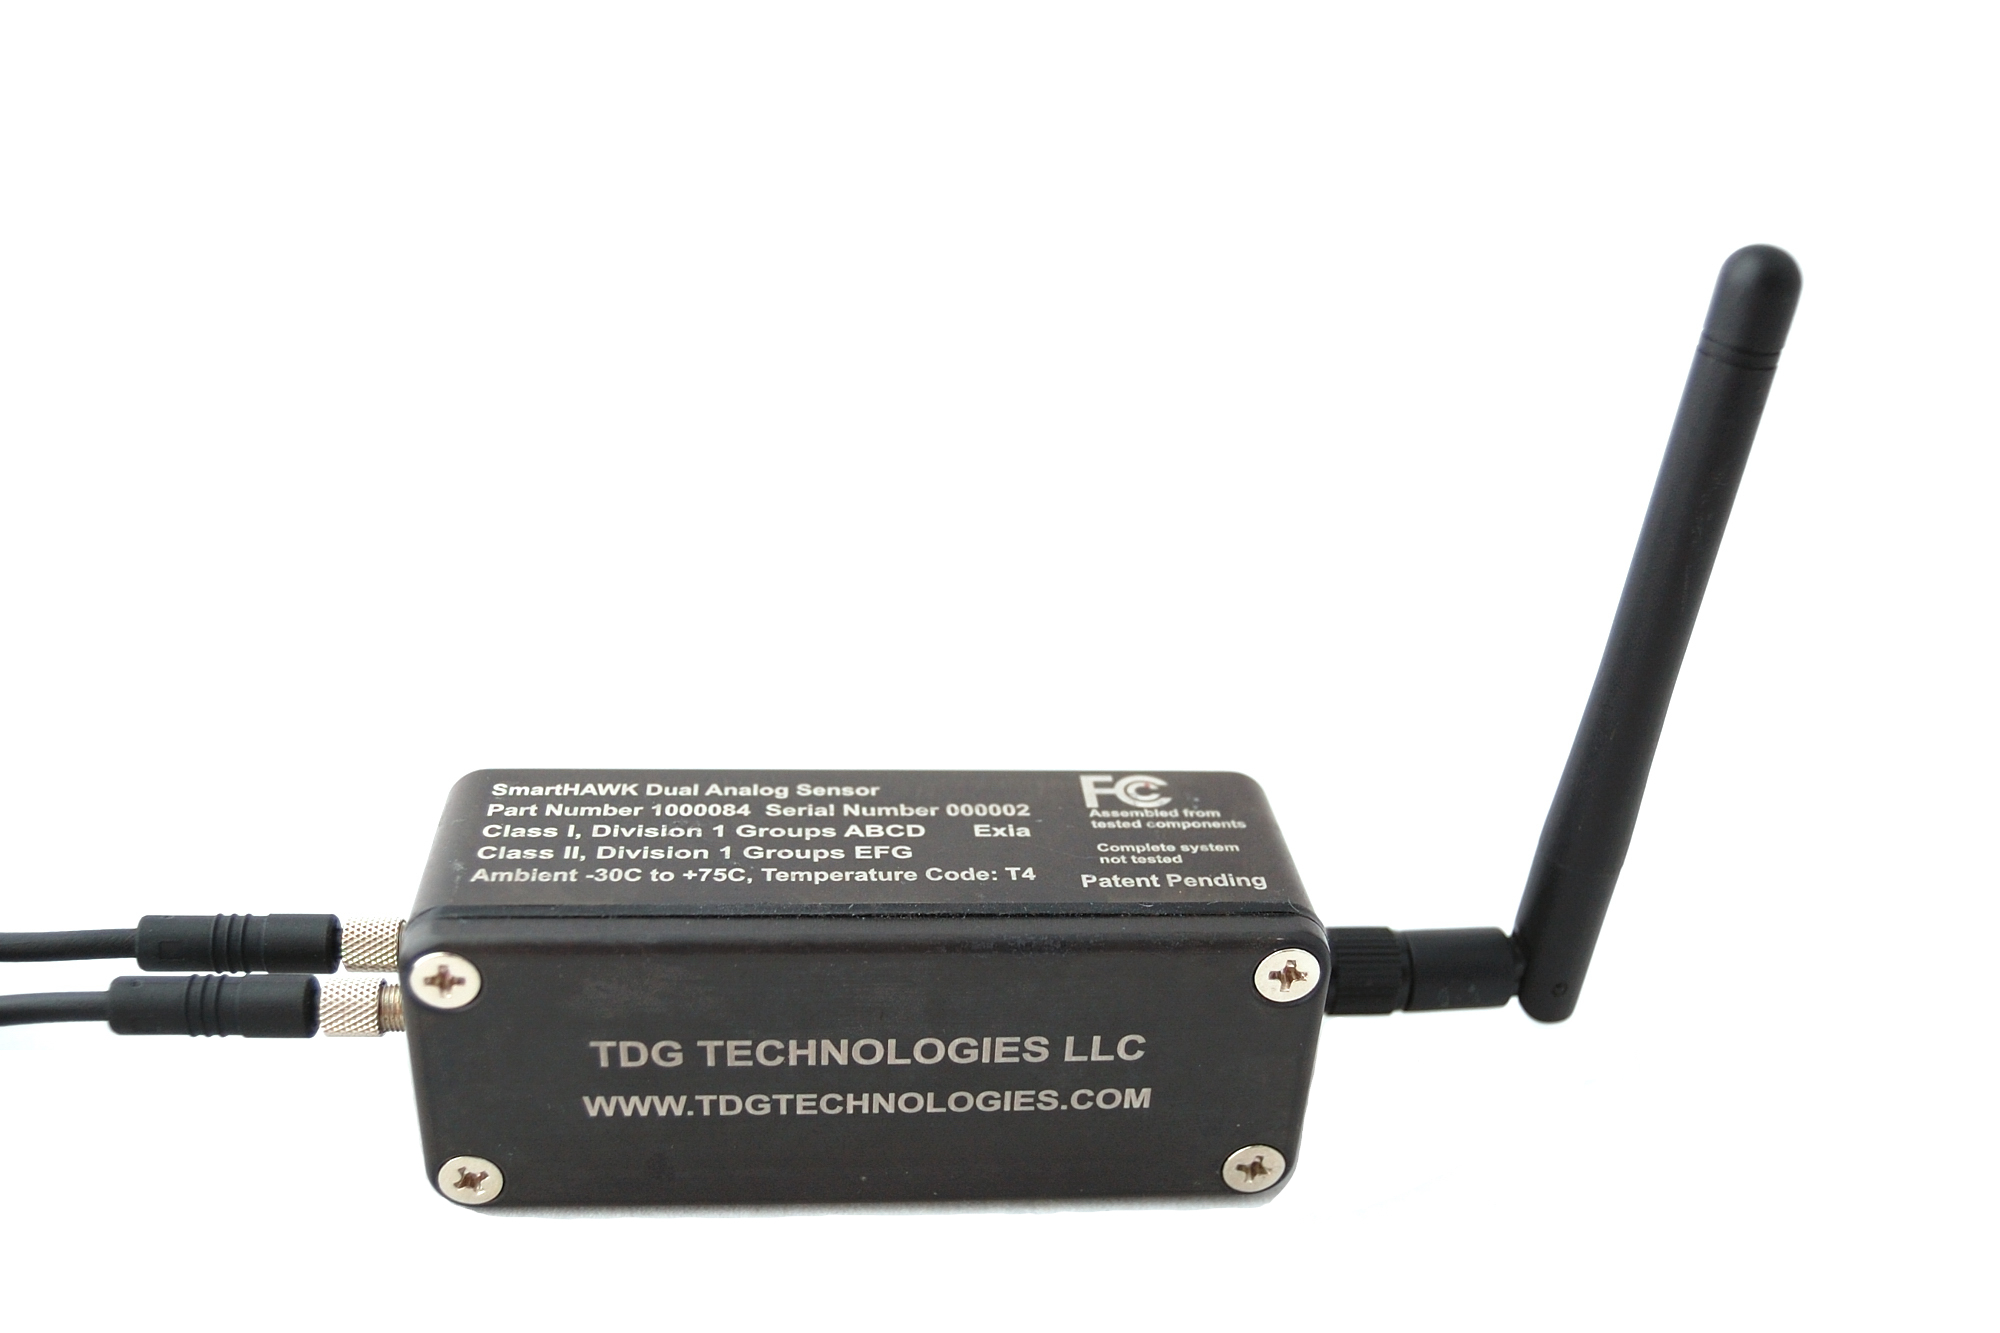 SmartHAWK Dual Analog Sensor provides a wireless solution for monitoring existing hard-wired equipment.